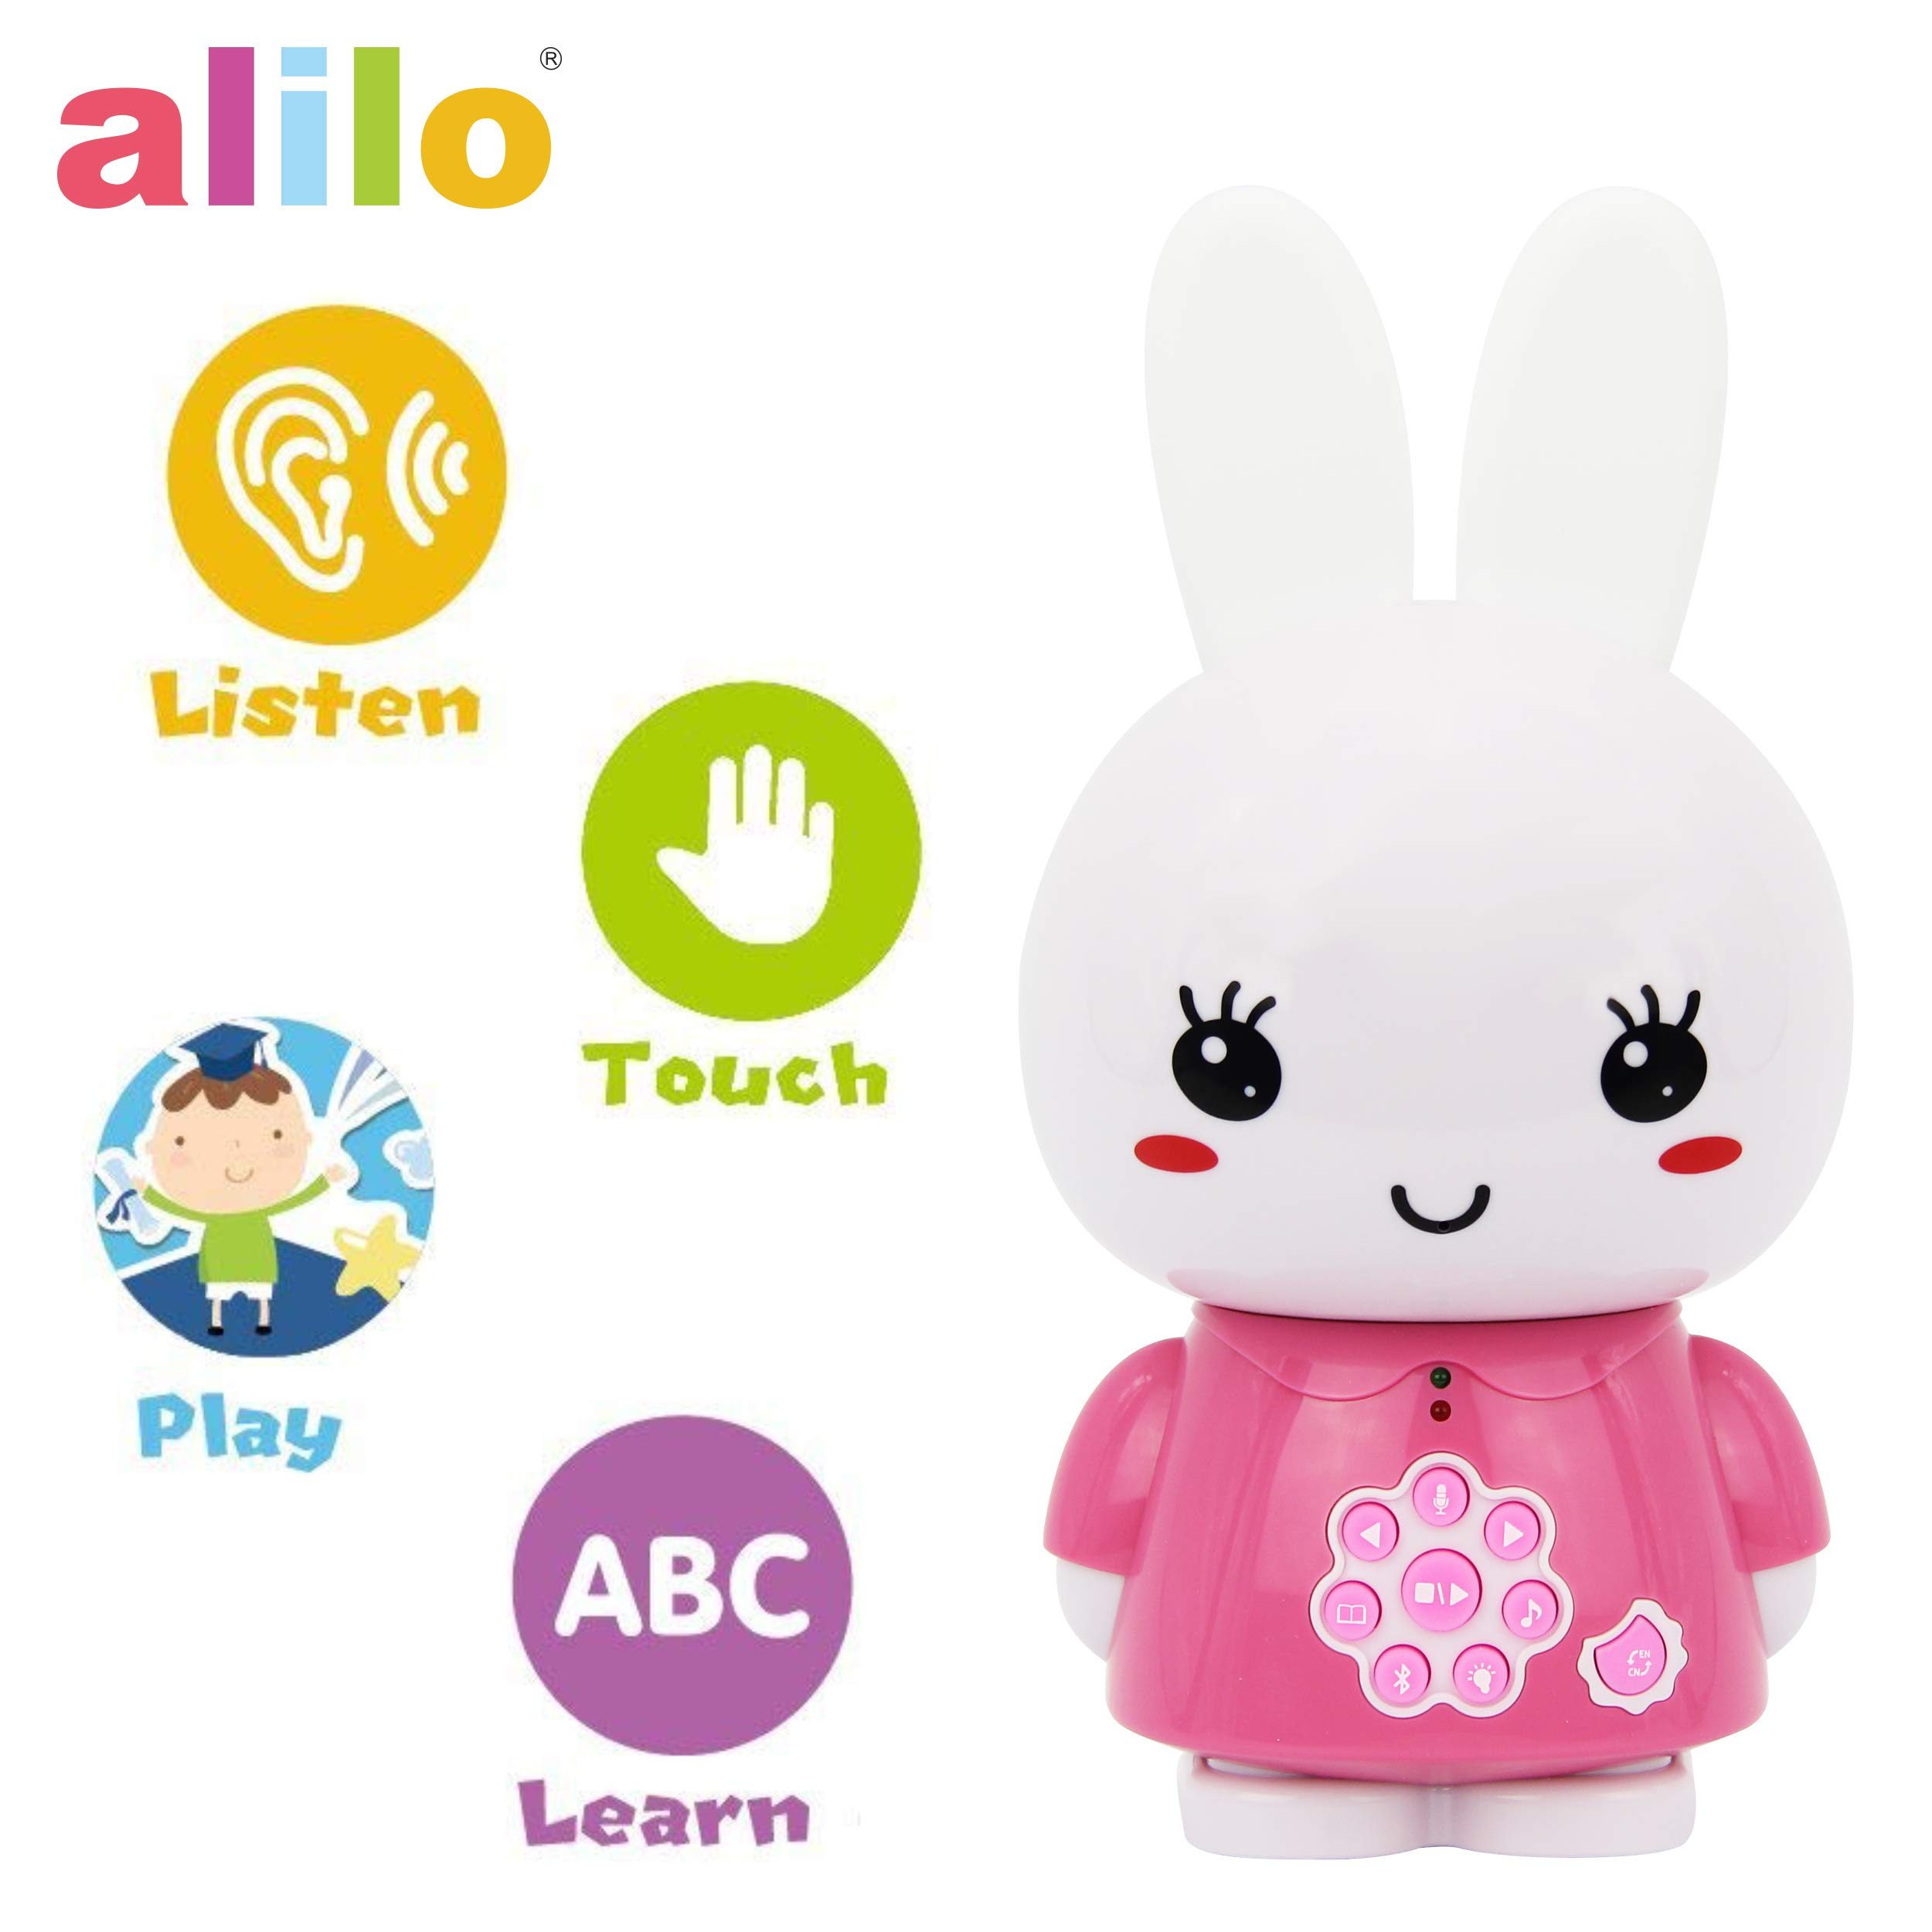 alilo Honey Bunny Story Teller Nursery Rhyme Lullaby Song Bedtime Story Fairy-Tale Interactive Children Brain Kids Early Development Learning Toy Training Bluetooth English Chinese Bilingual G6X Pink